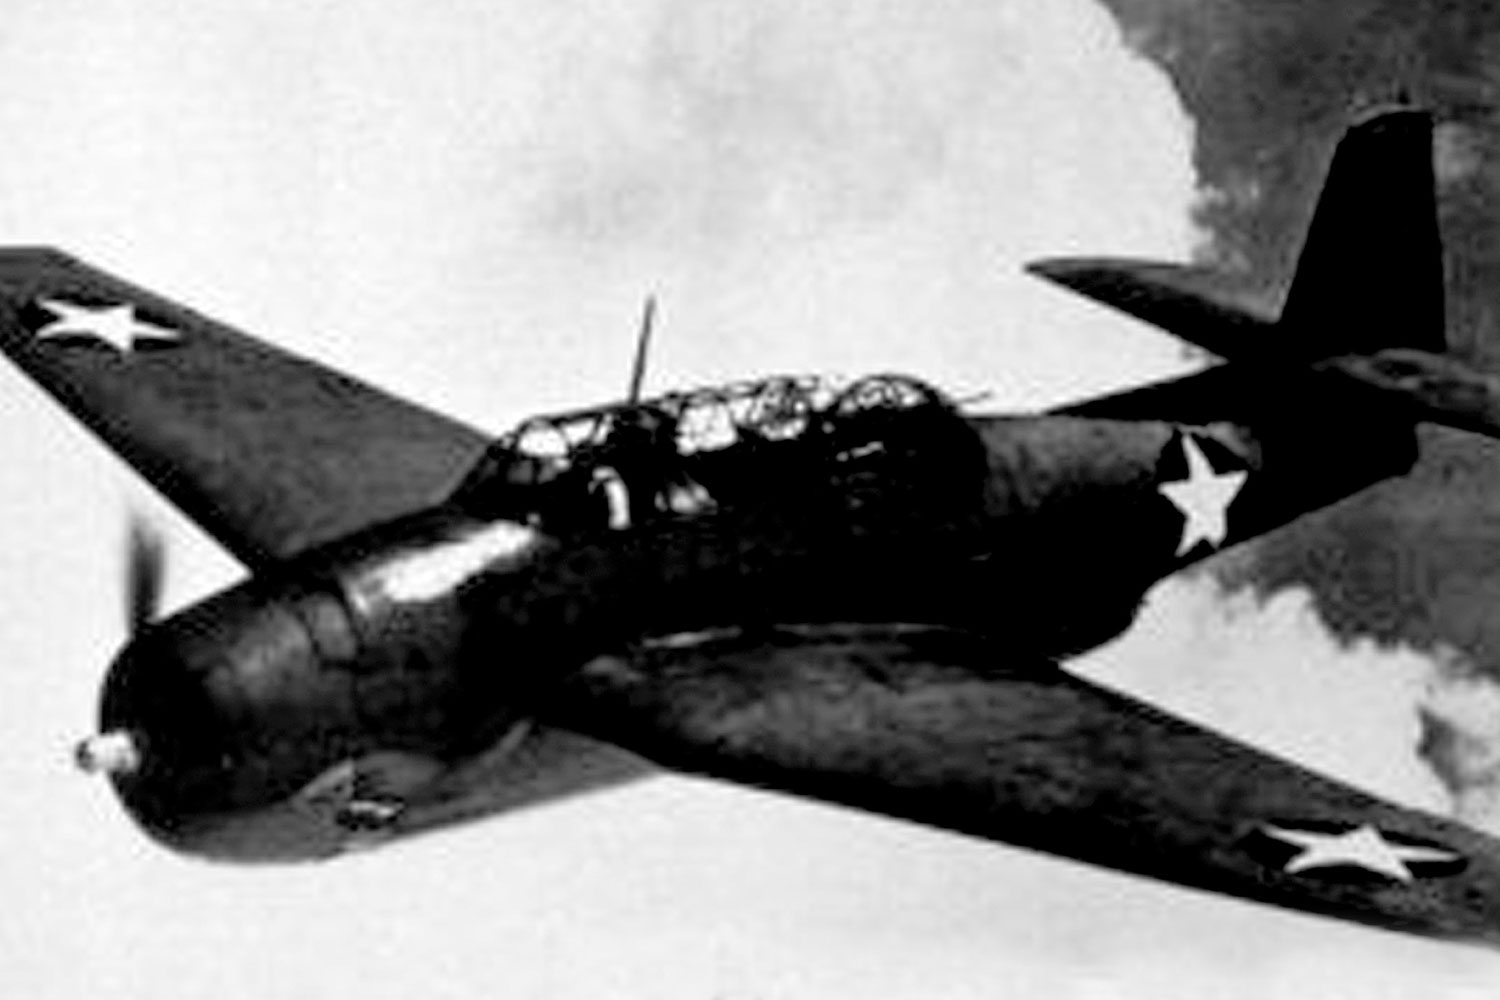 American Navy Avenger planes, the same kind of planes which disappeared in the Bermuda triangle.